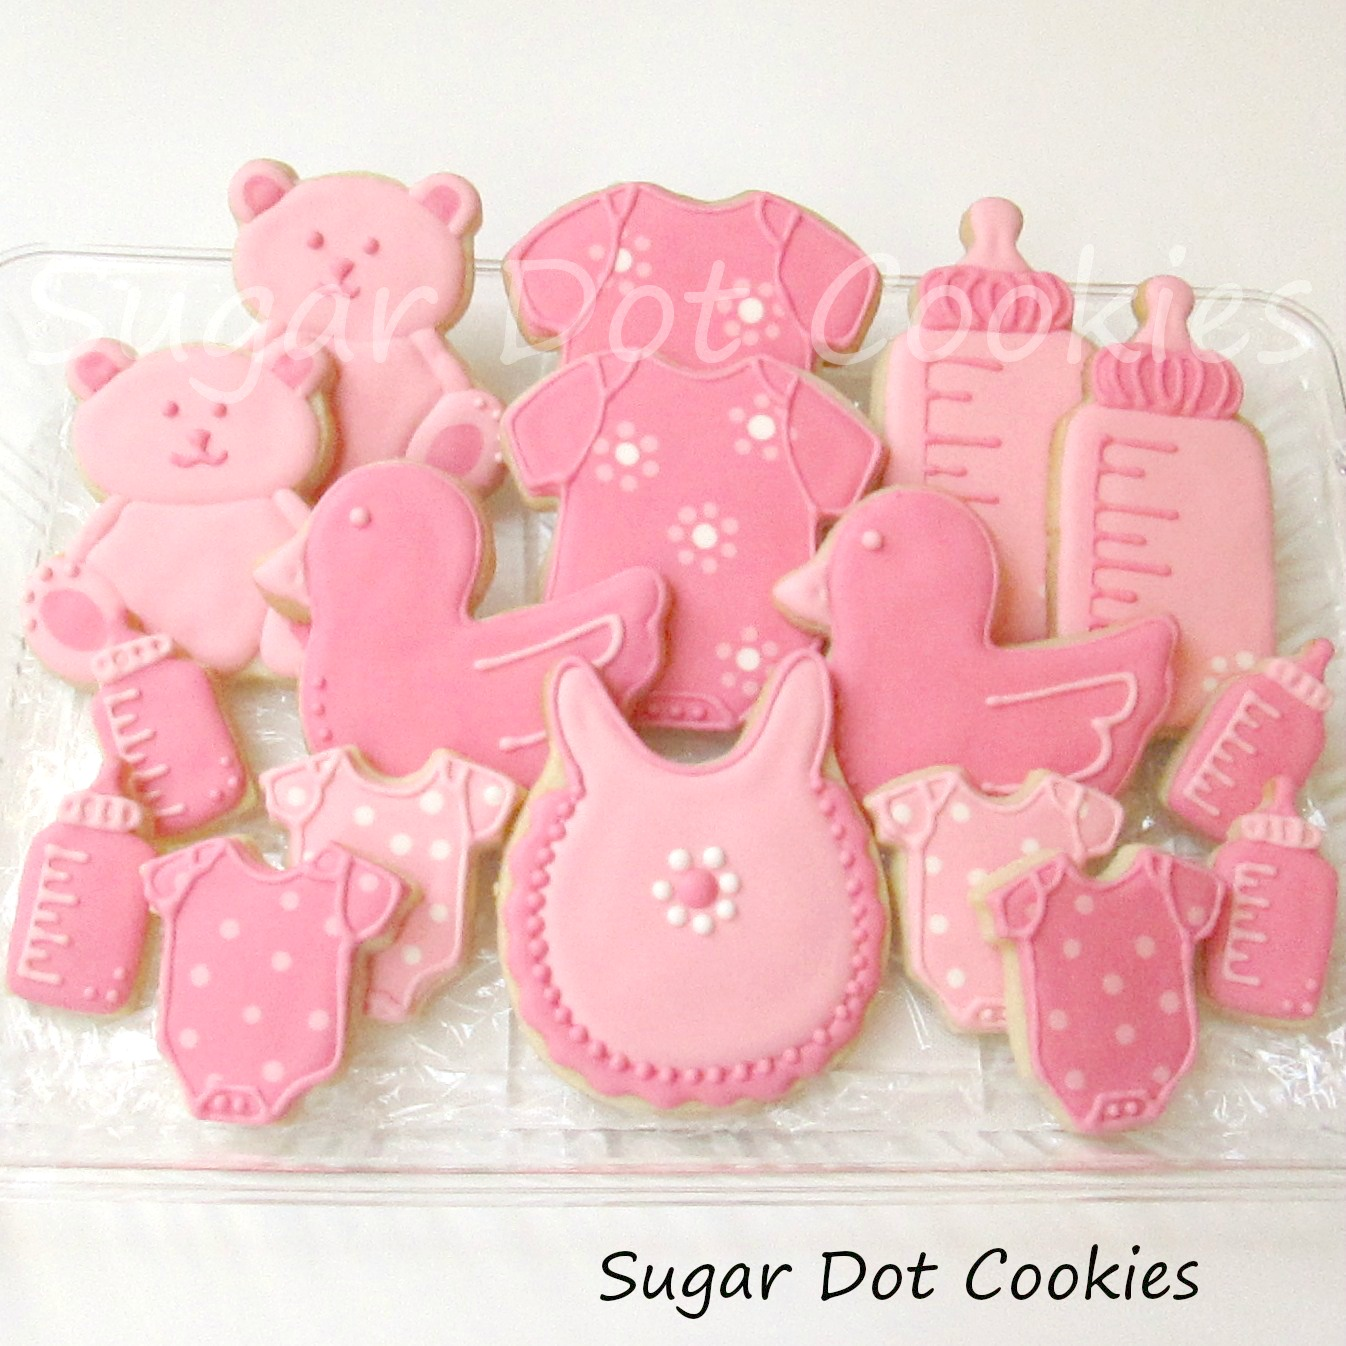 New Baby Sugar Cookies With Royal Icing